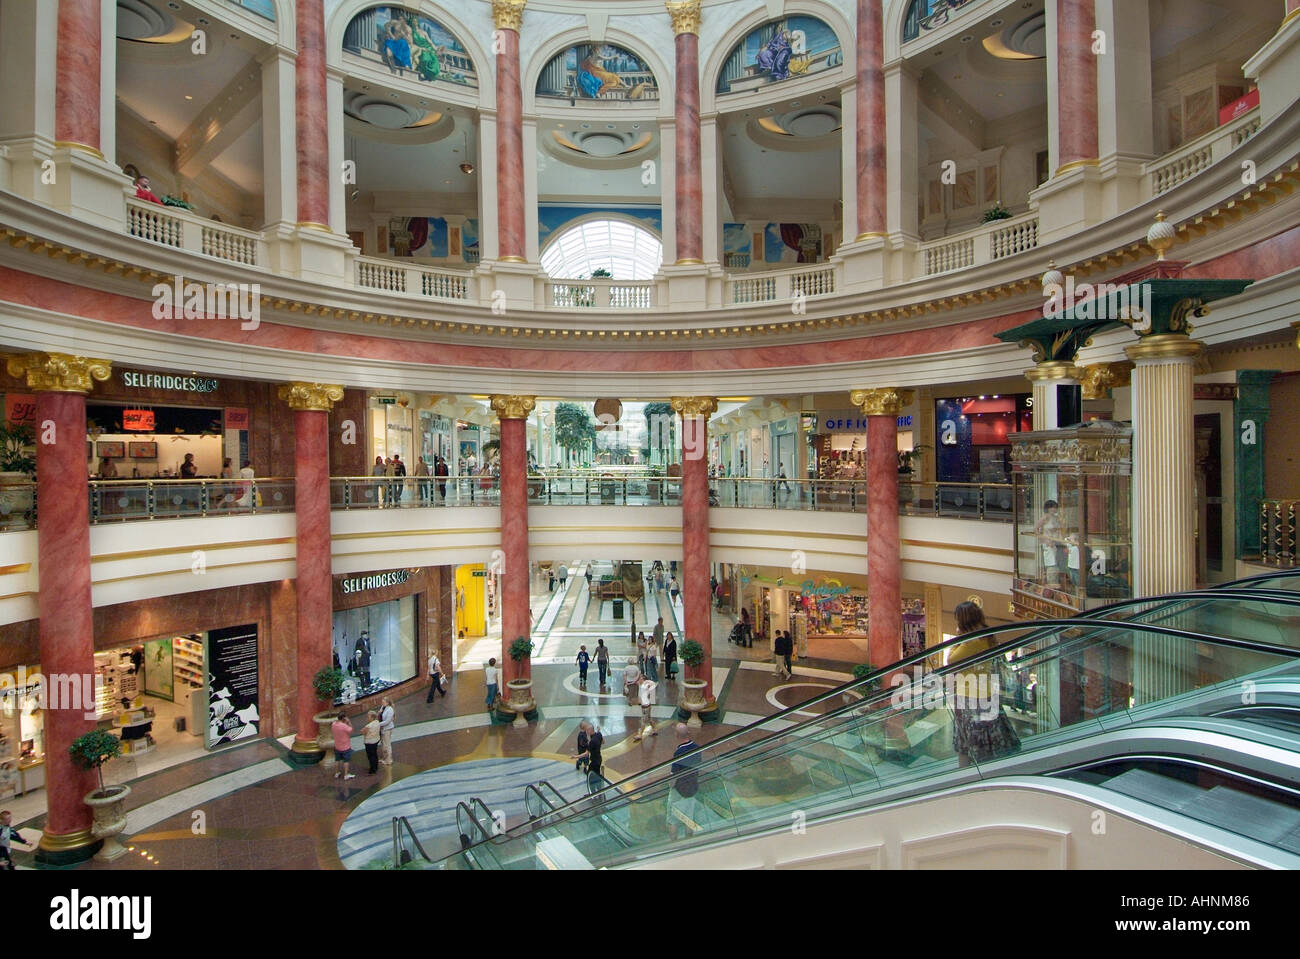 45b7ce97530 Trafford urban centre North West UK England Europe GB Great Britain EU  European Union - Stock